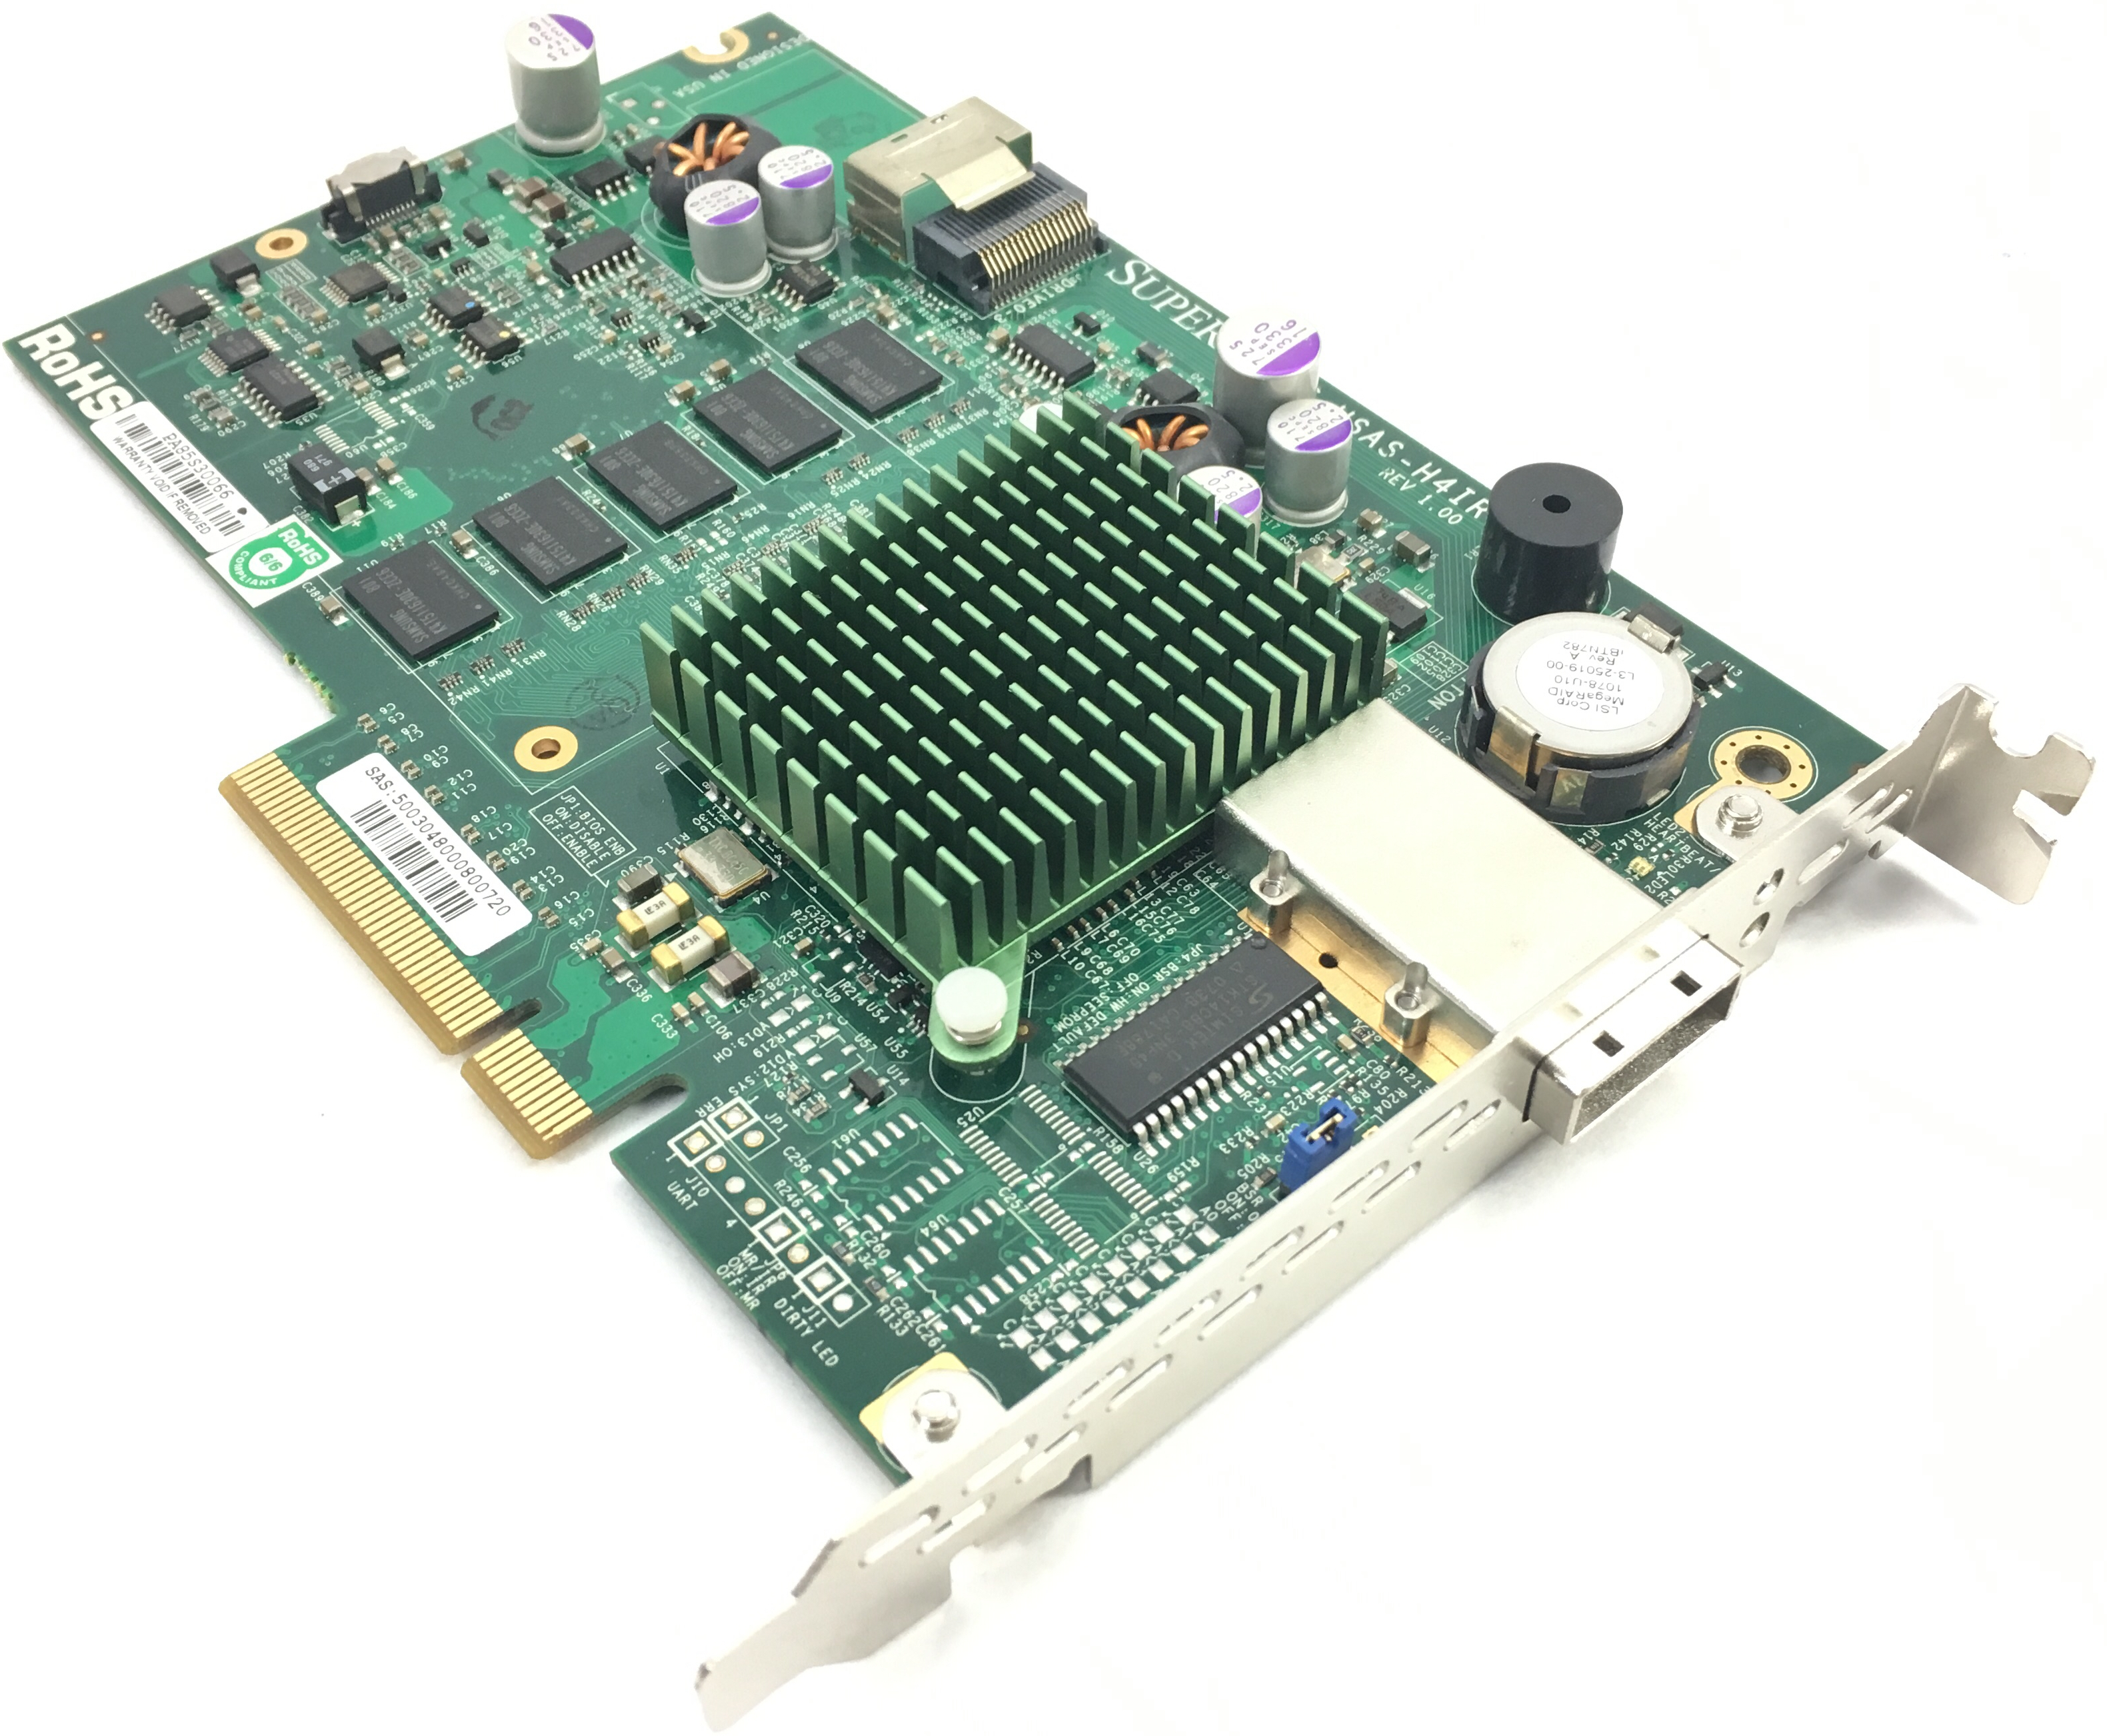 Supermicro 3Gb/s 4-Internal And 4-External Ports SAS Raid Adapter (AOC-USAS-H4IR)